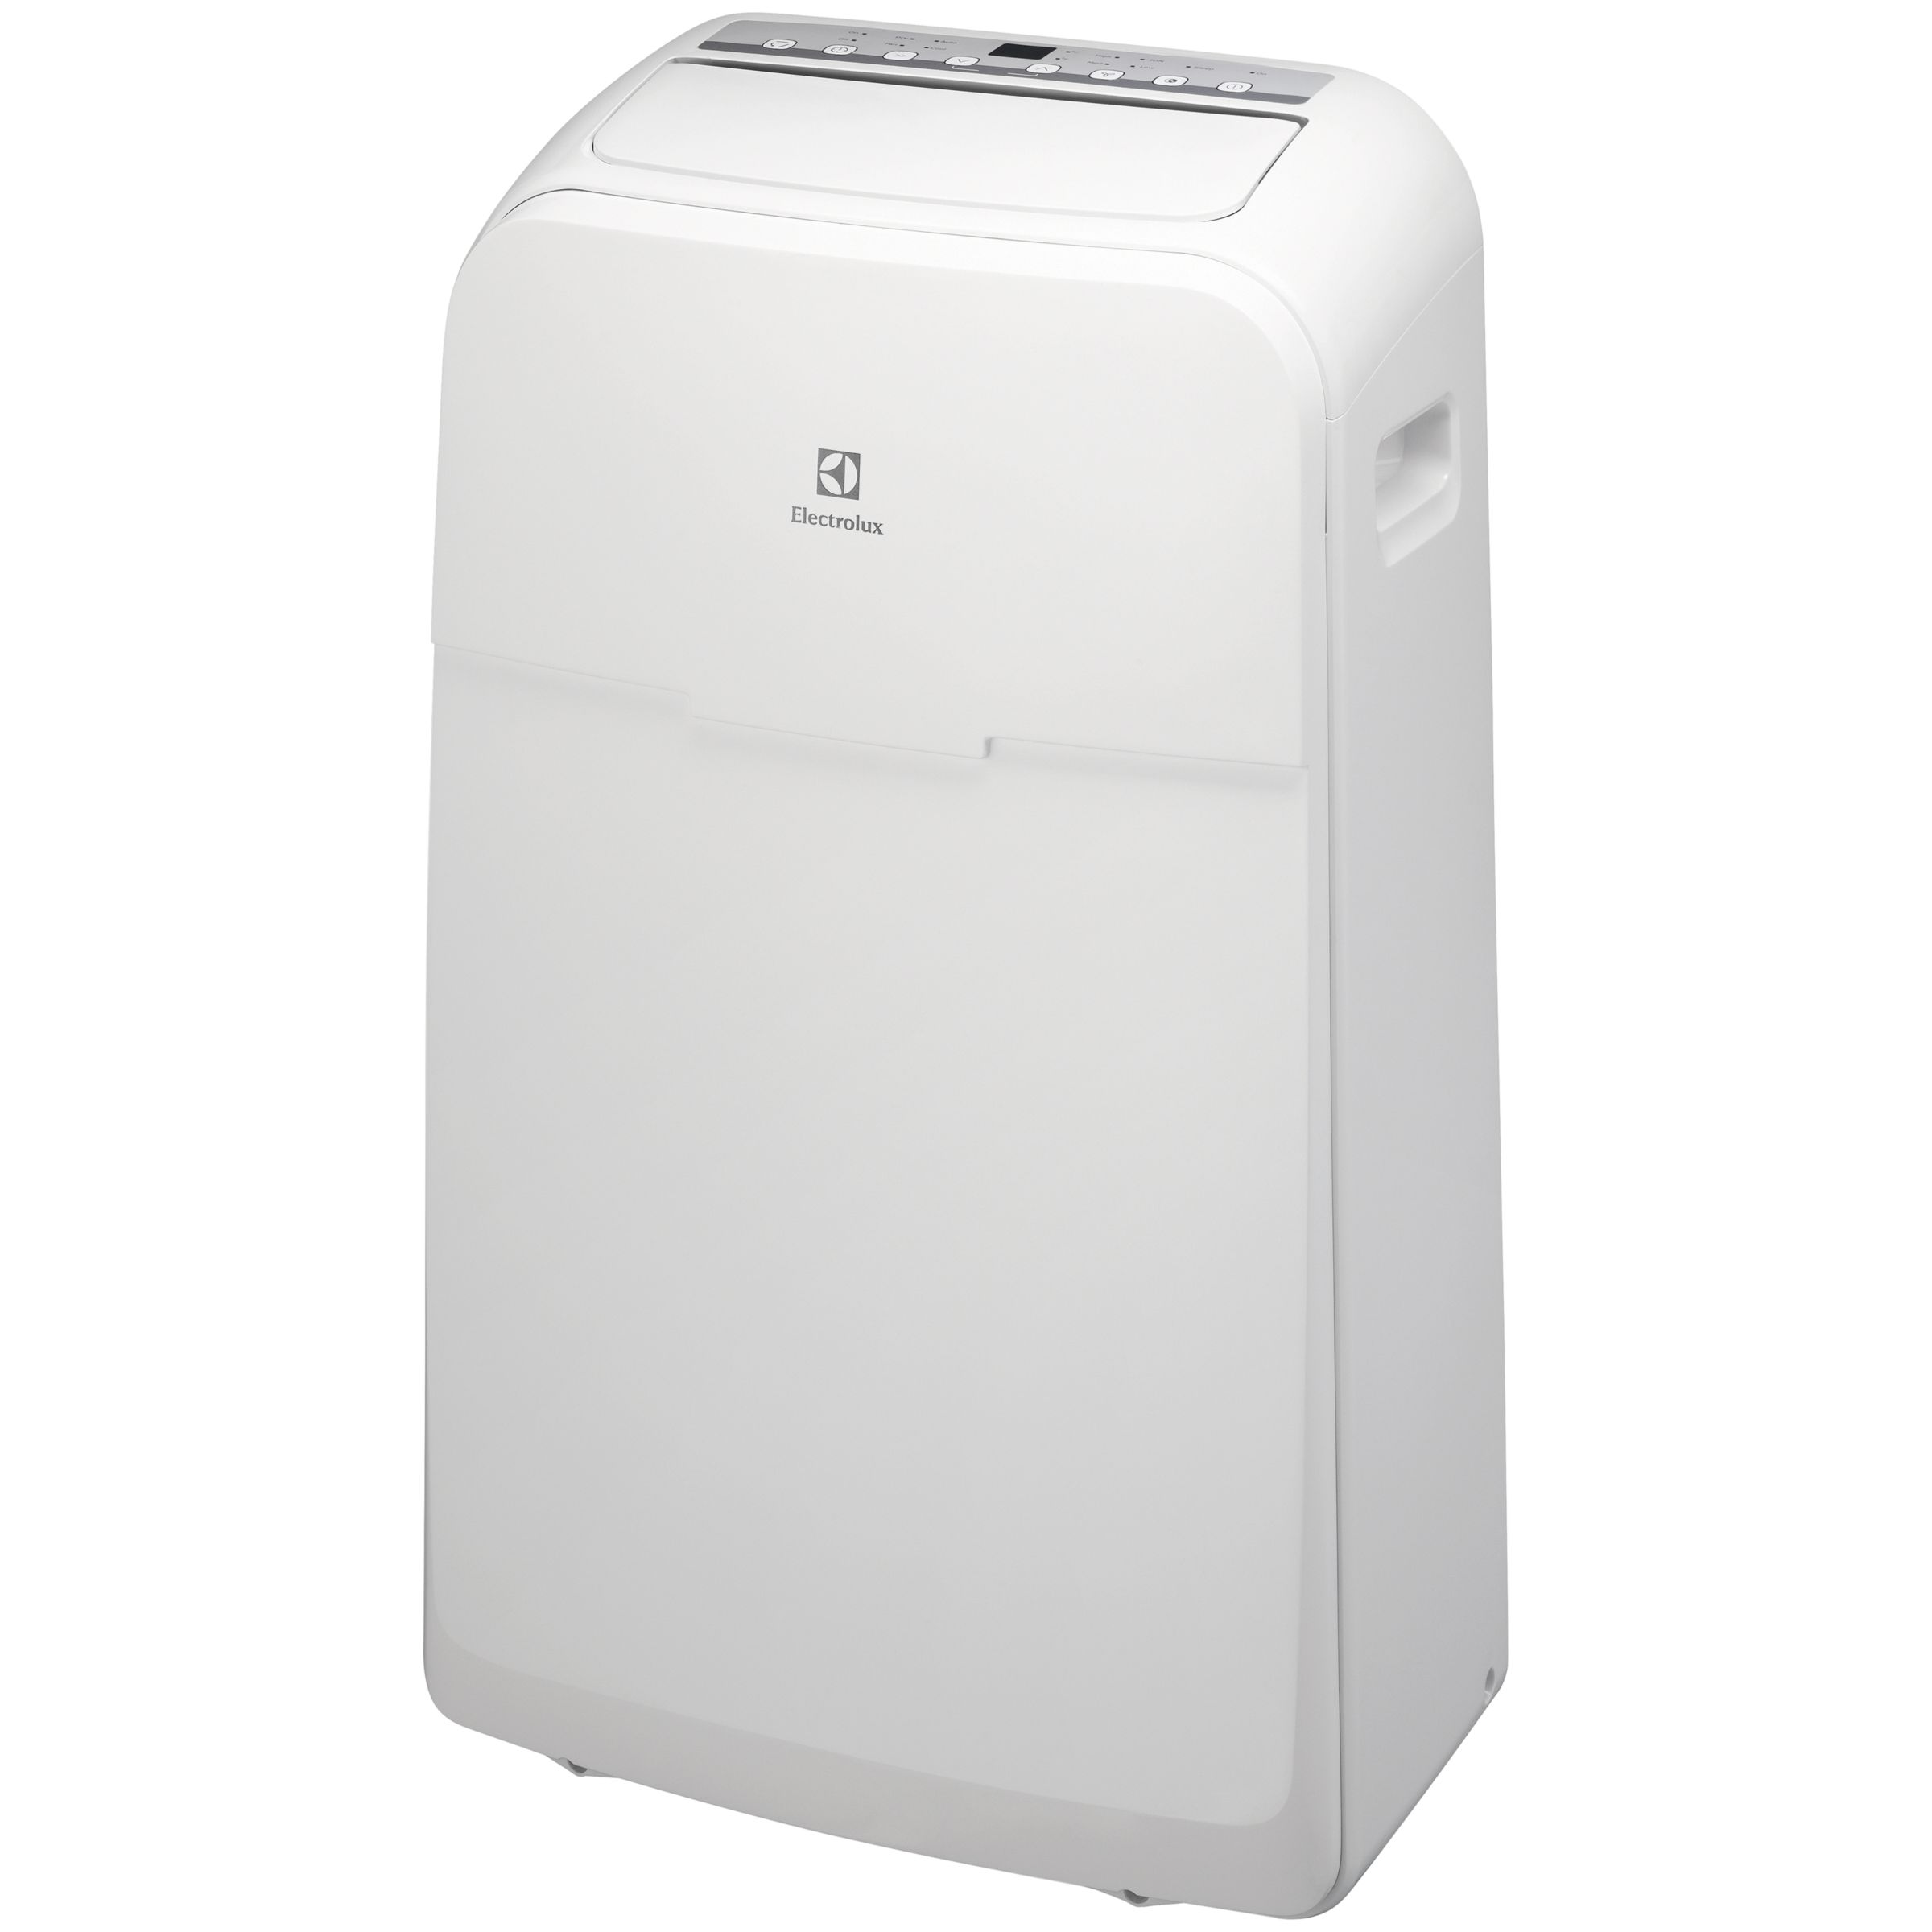 Electrolux EXP09HN1WI Portable Air Conditioner, White